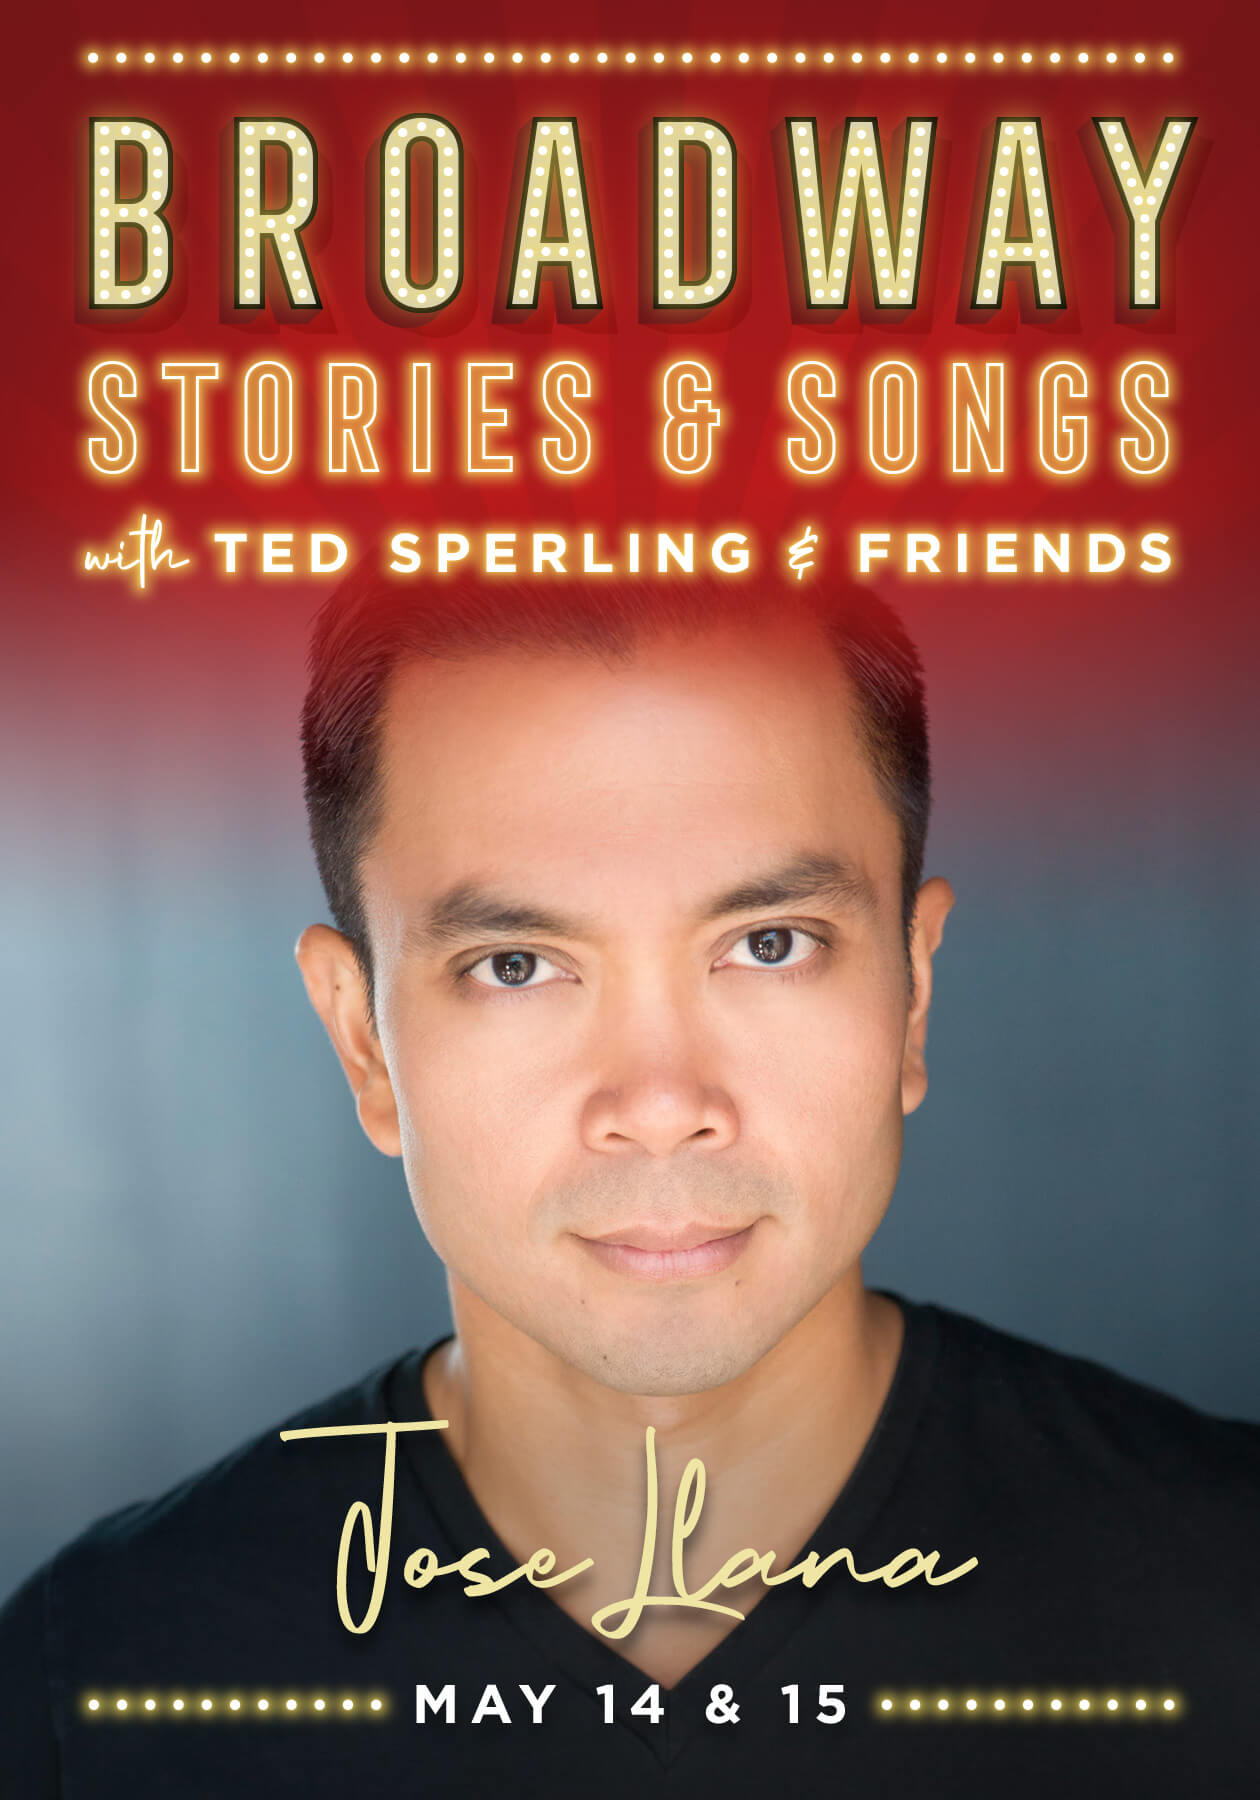 Jose Llana: Broadway Stories & Songs with Ted Sperling